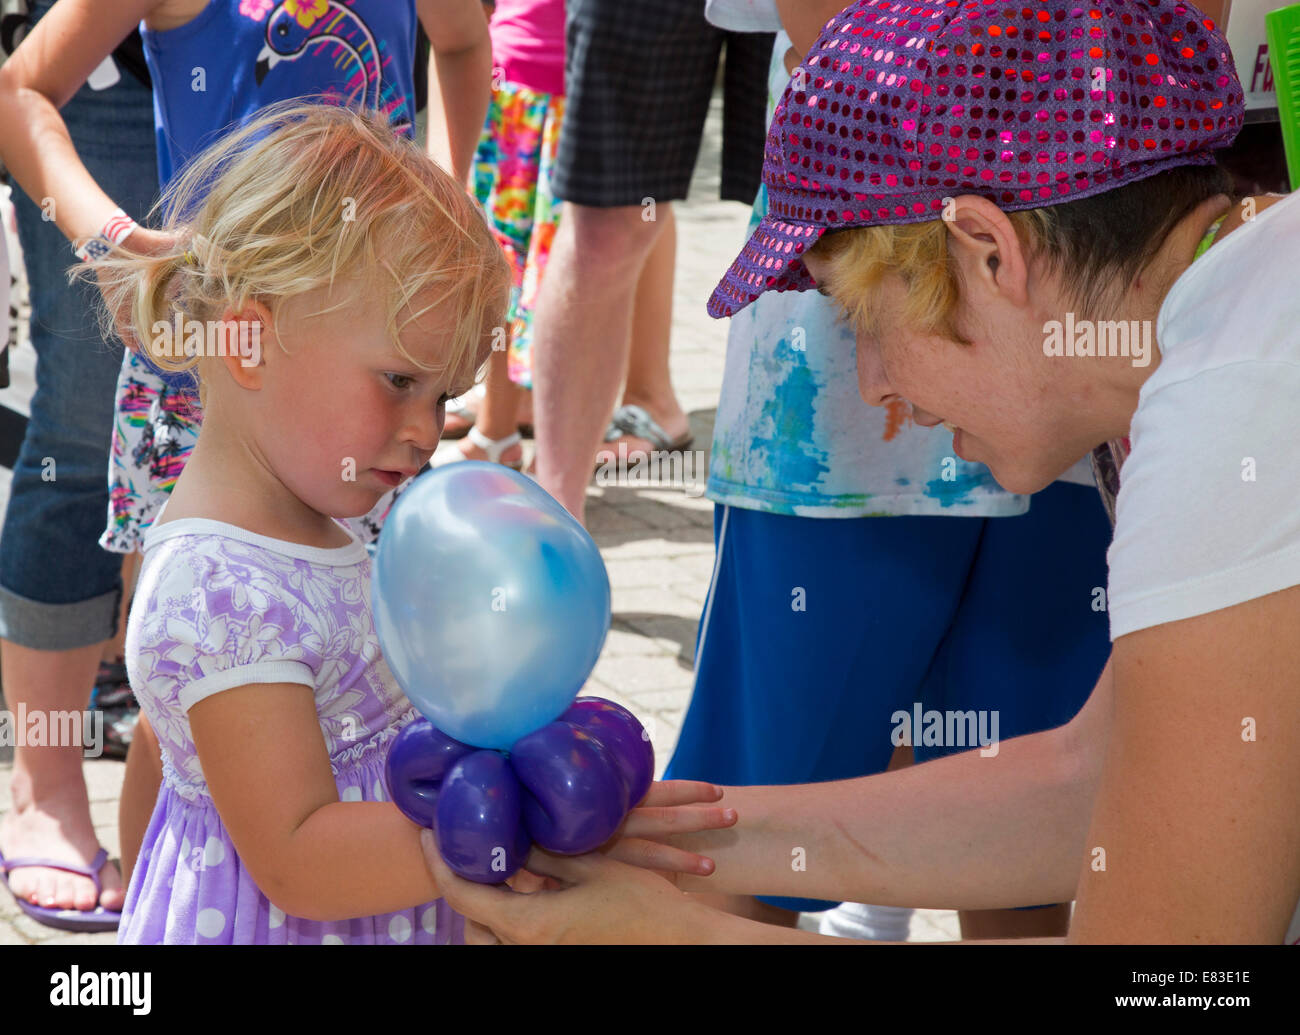 Dearborn, Michigan - A girl gets a balloon during an event at Greenfield Village. - Stock Image